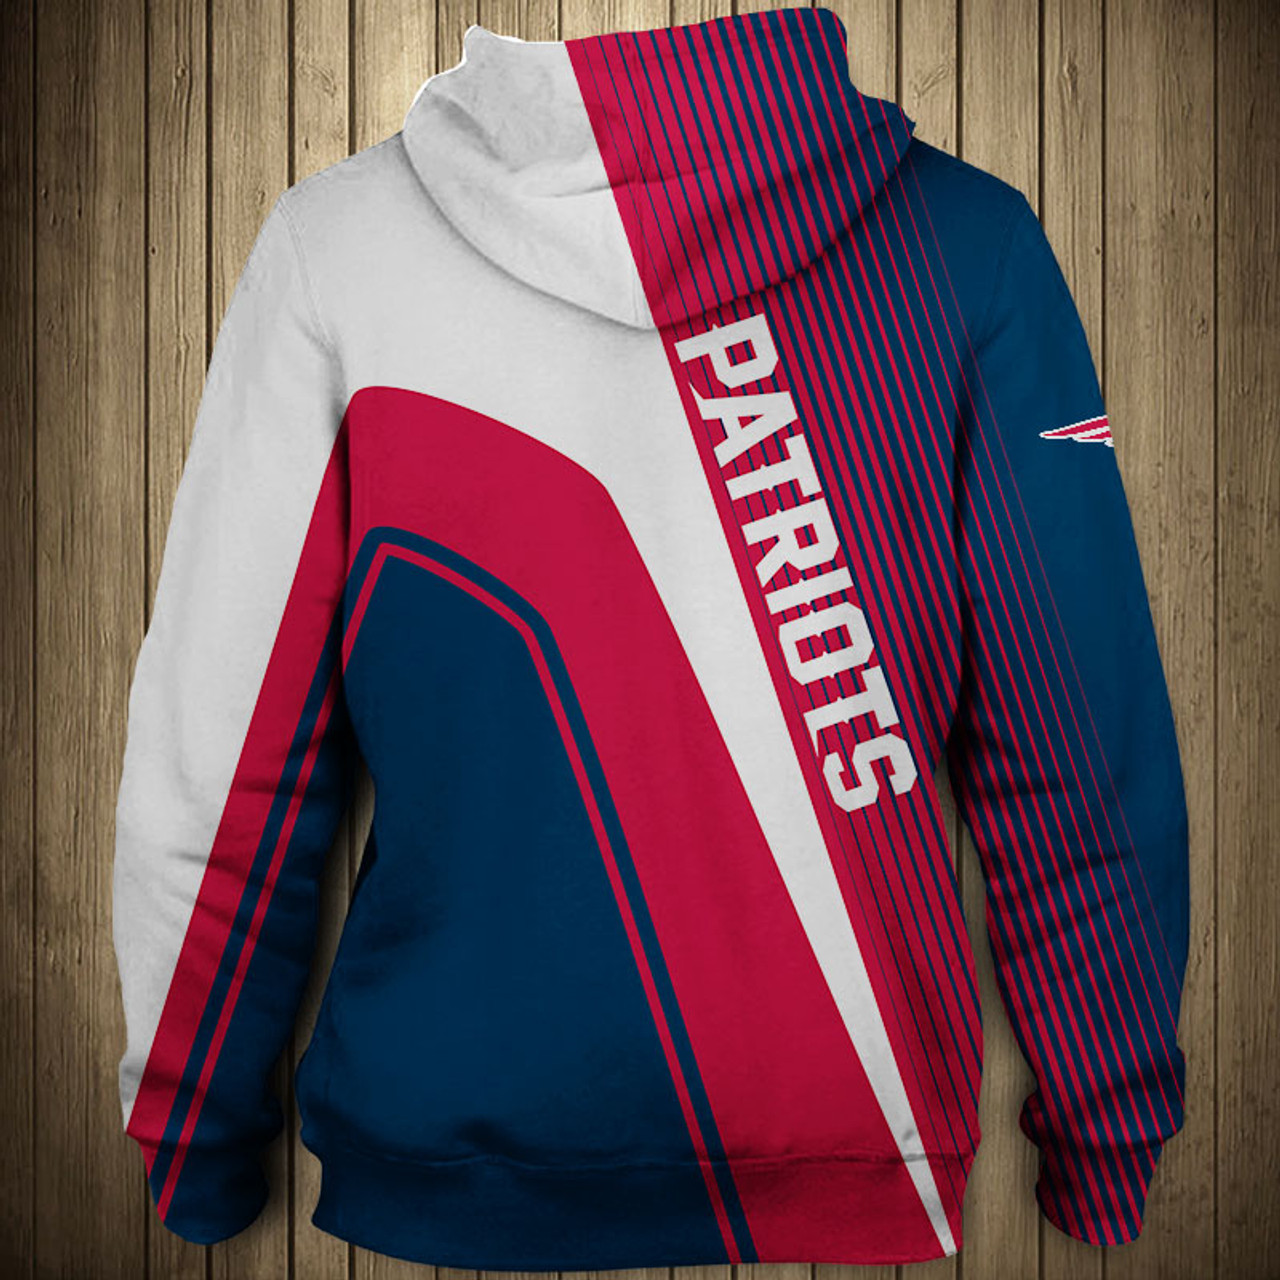 best service 1dfd1 6a1ba **(OFFICIAL-N.F.L.NEW-ENGLAND-PATRIOTS-PULLOVER-HOODIES/3D-CUSTOM-PATRIOTS-LOGOS  & OFFICIAL-PATRIOTS-TEAM-COLORS/NICE-3D-DETAILED-GRAPHIC-PRINTED-DOUB...